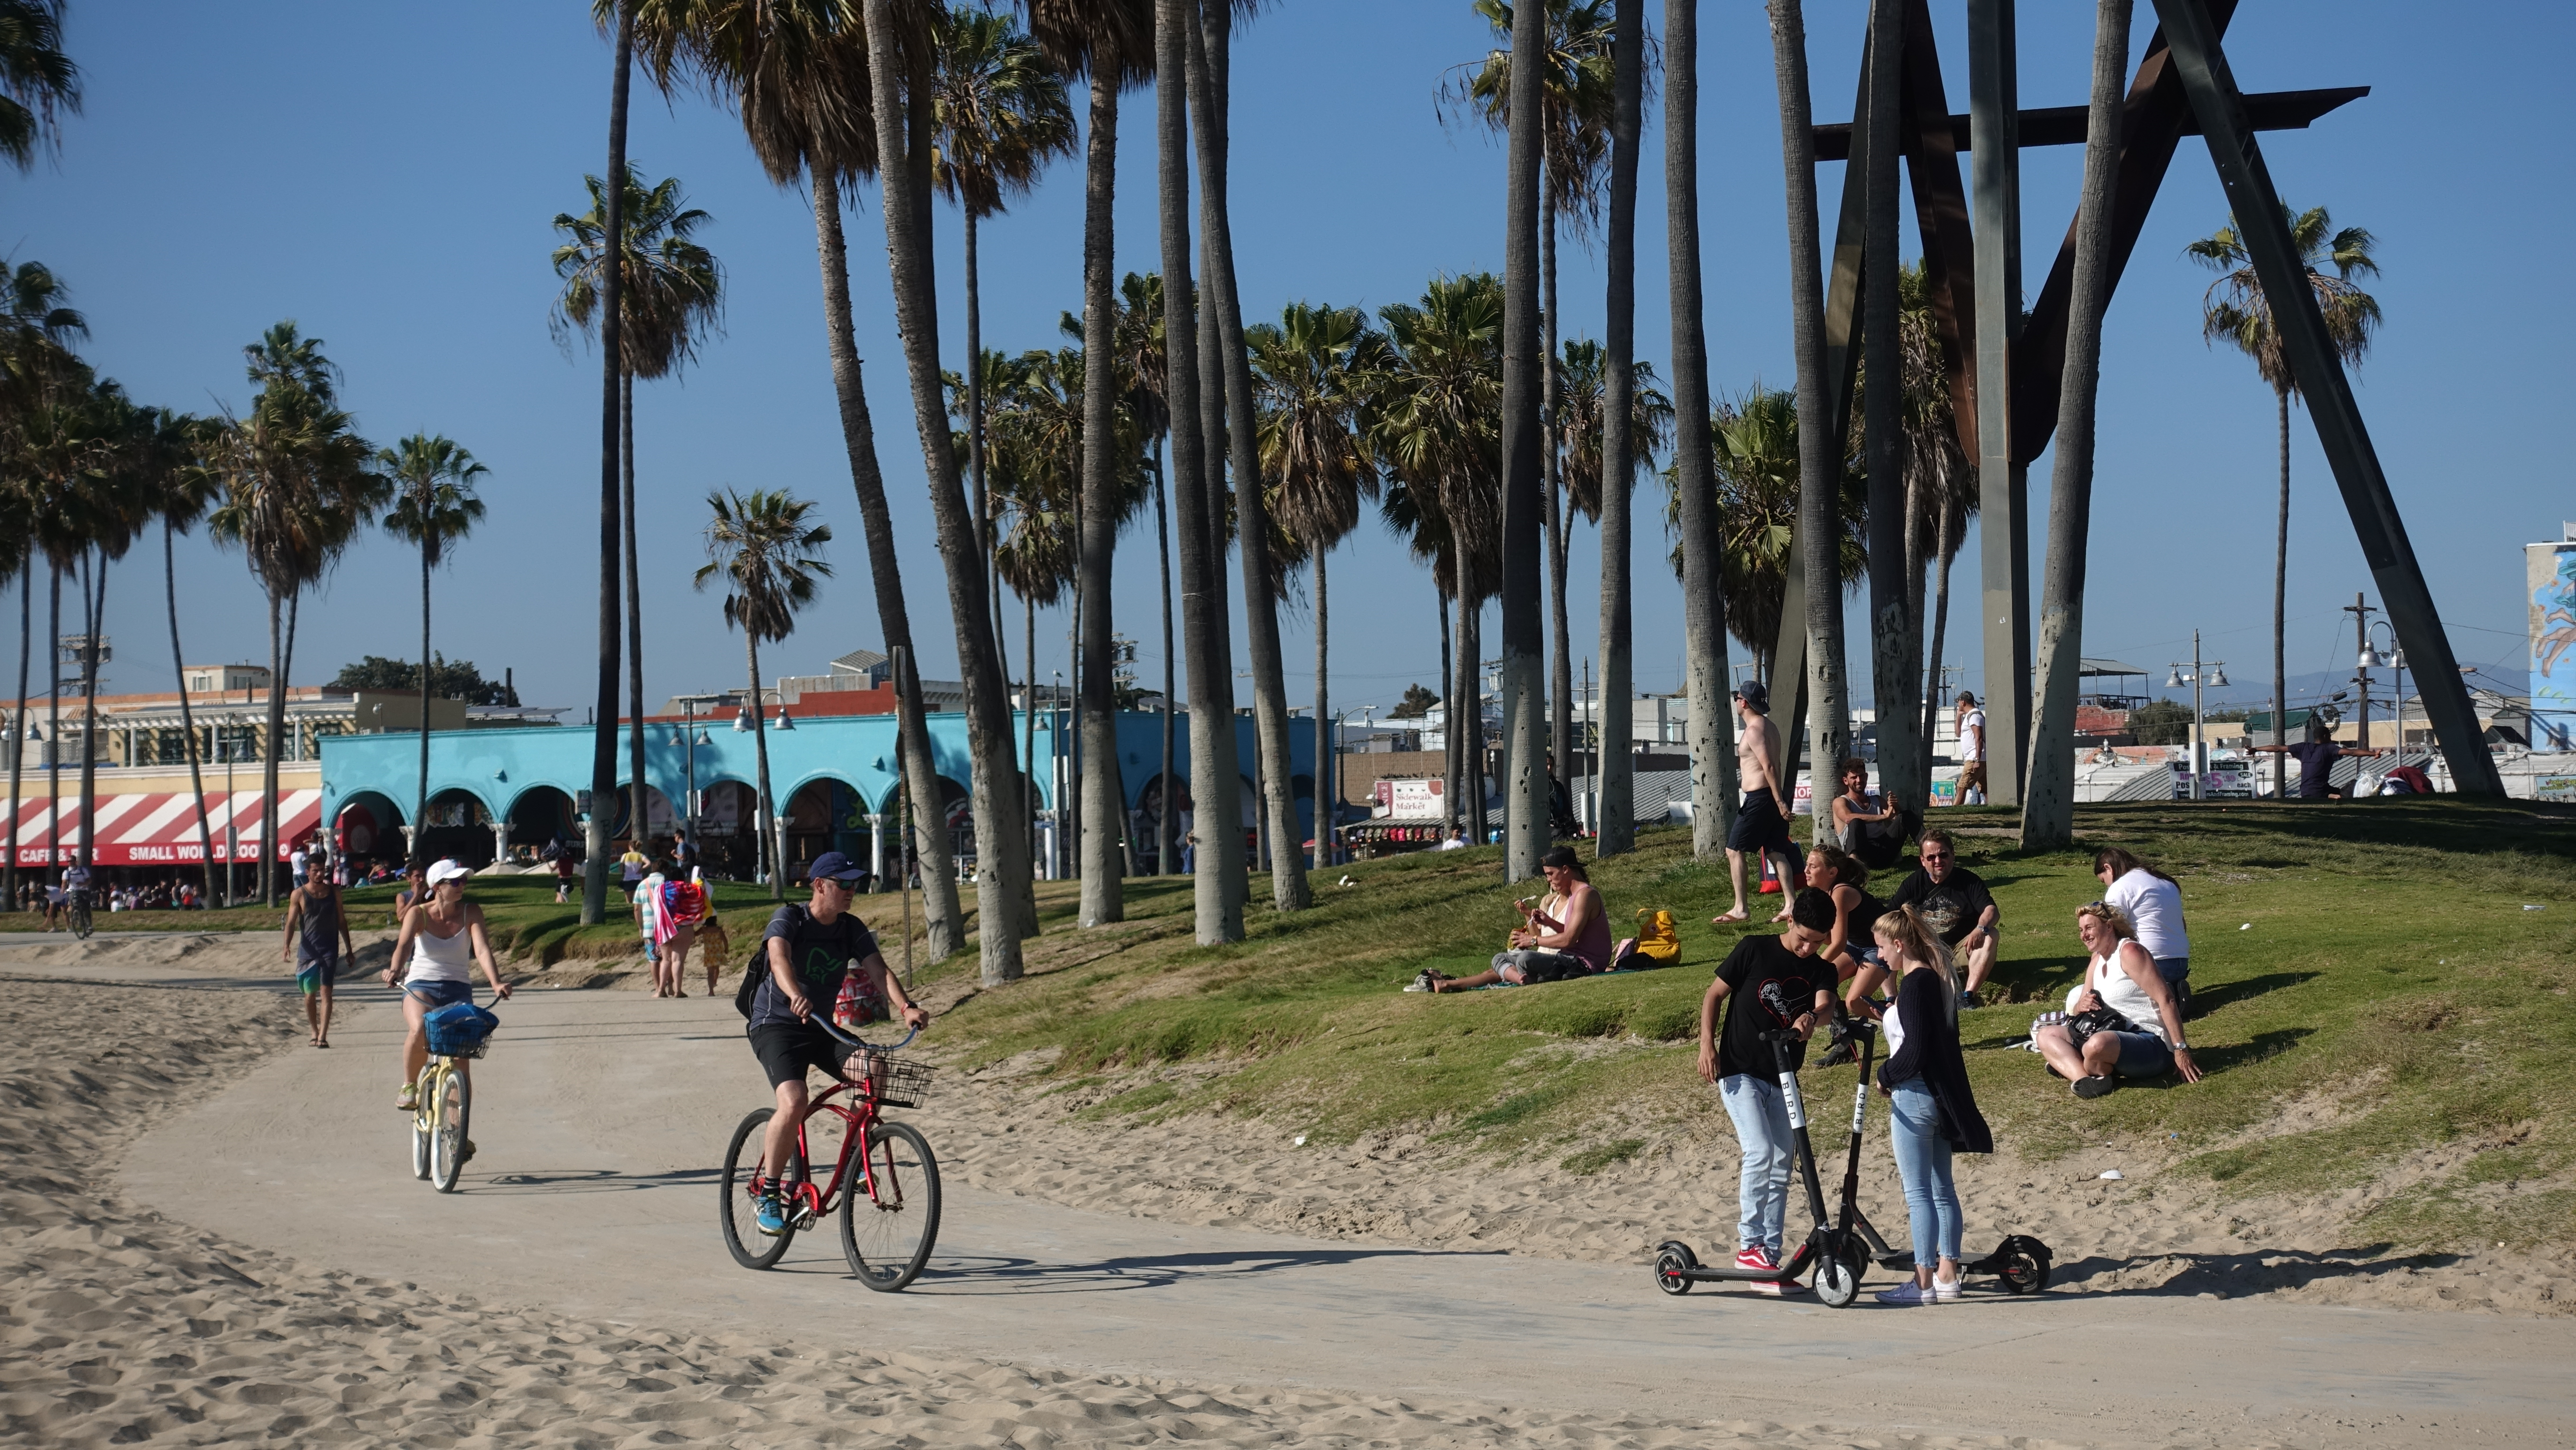 A small group of people travel down a path on bikes and scooters surrounded by blue skies and palm trees.